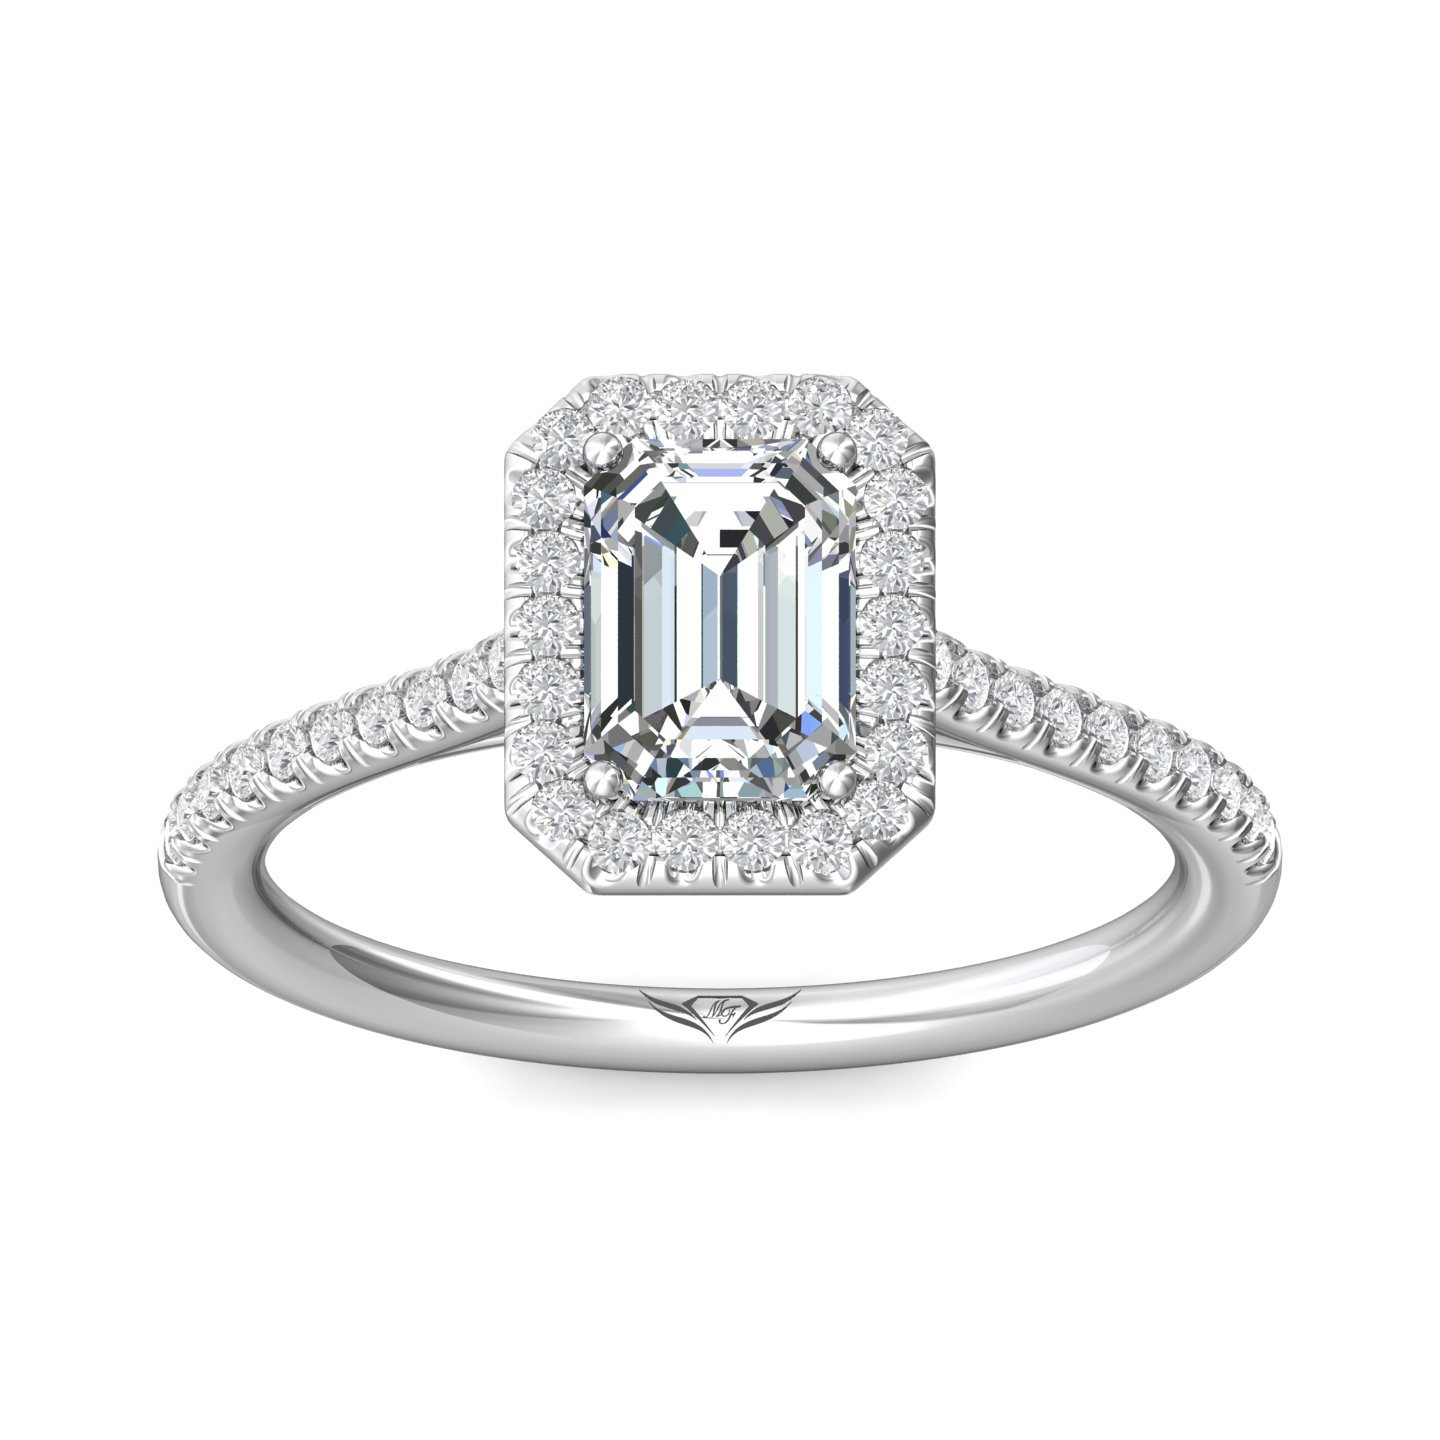 Rings - 14K White Gold FlyerFit Micropave Halo Engagement Ring - image #3